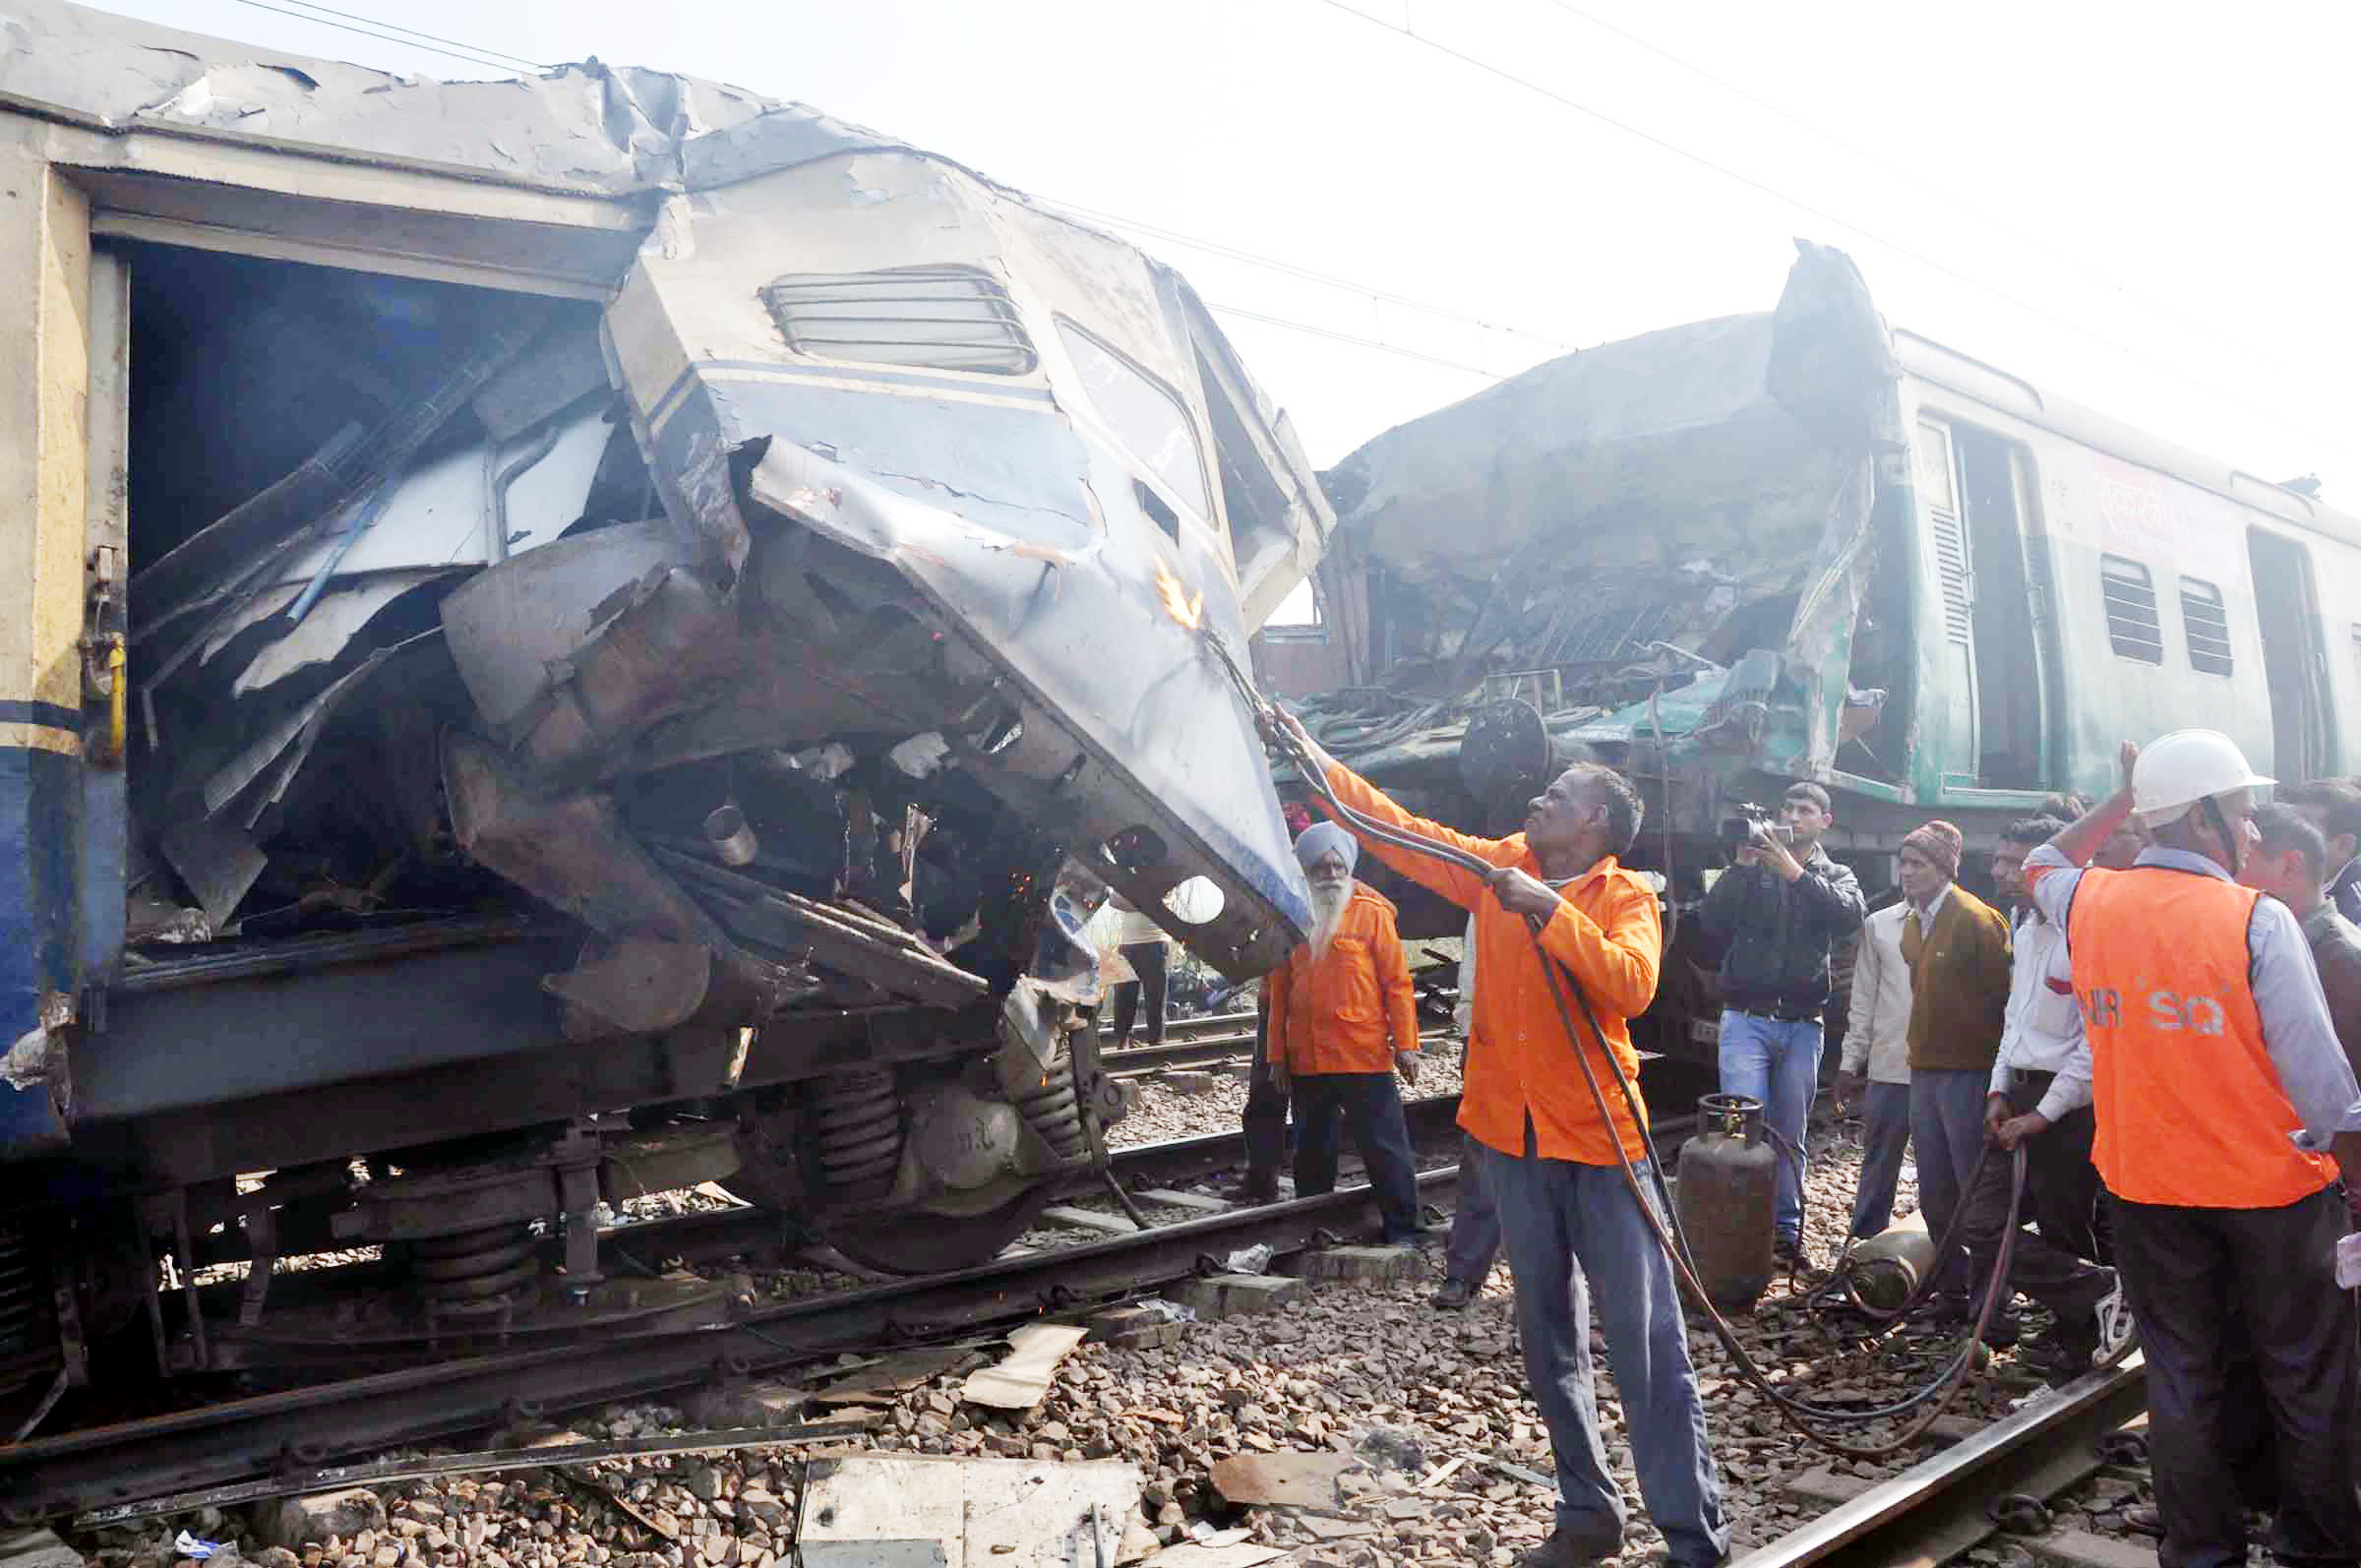 Railway officials engaged in removing damaged coaches of Lokmanya Tilak Express and EMU train which collided in Haryana's Palwal district on Tuesday morning, at least one person killed and over 100 injured in the accident.(UNI)